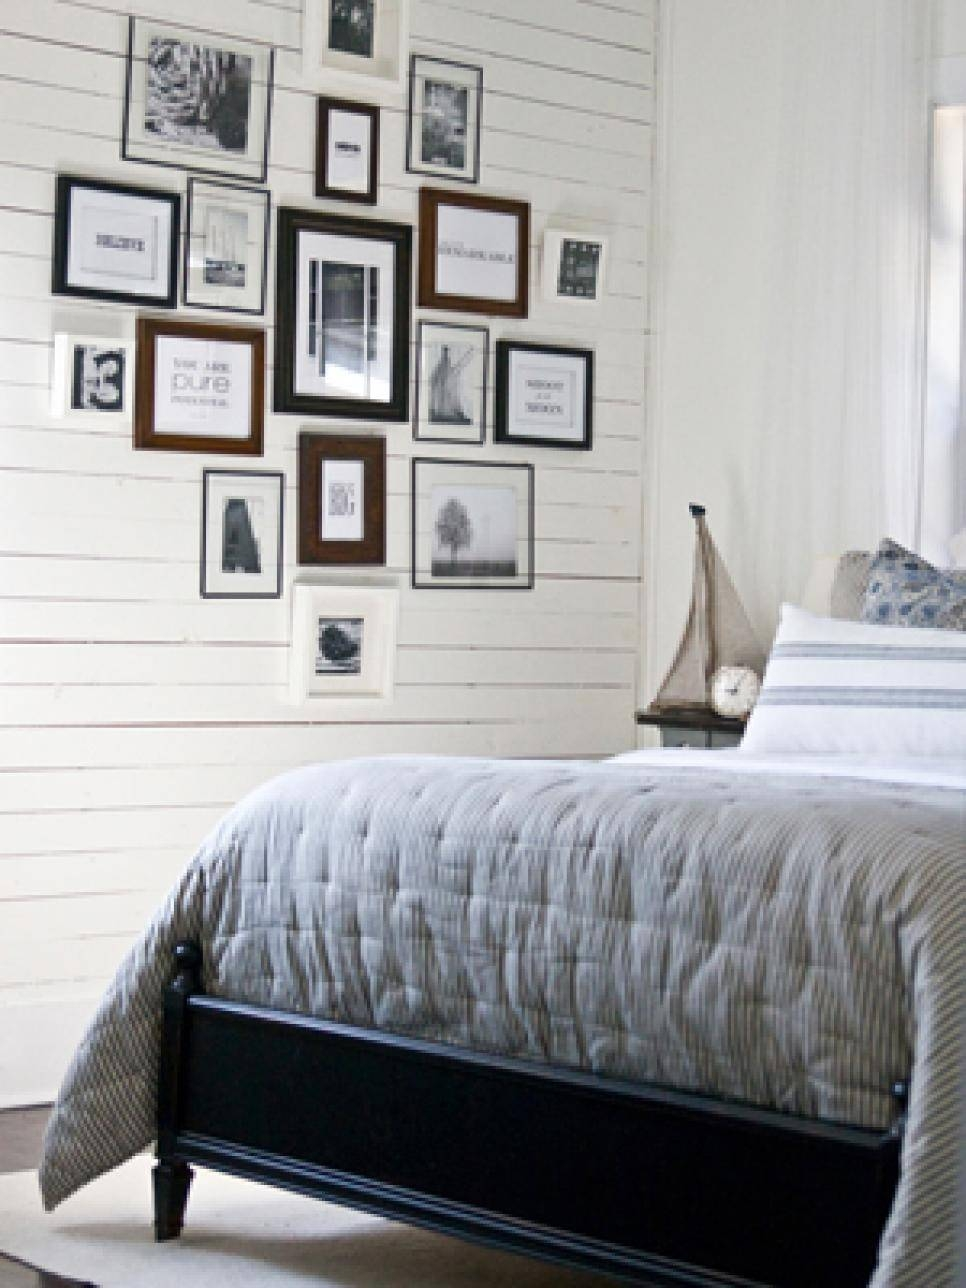 10 Ways To Display Bedroom Frames | Hgtv In Most Recent Bedroom Framed Wall Art (View 3 of 20)